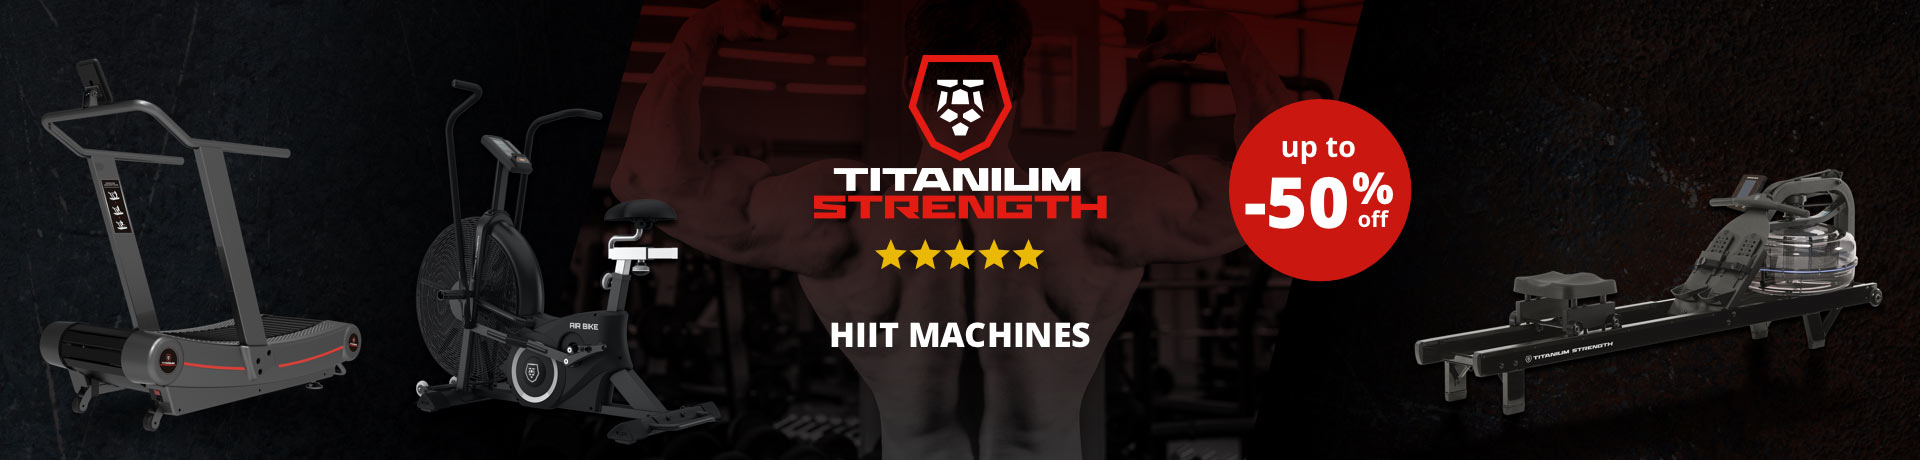 Titanium Strength